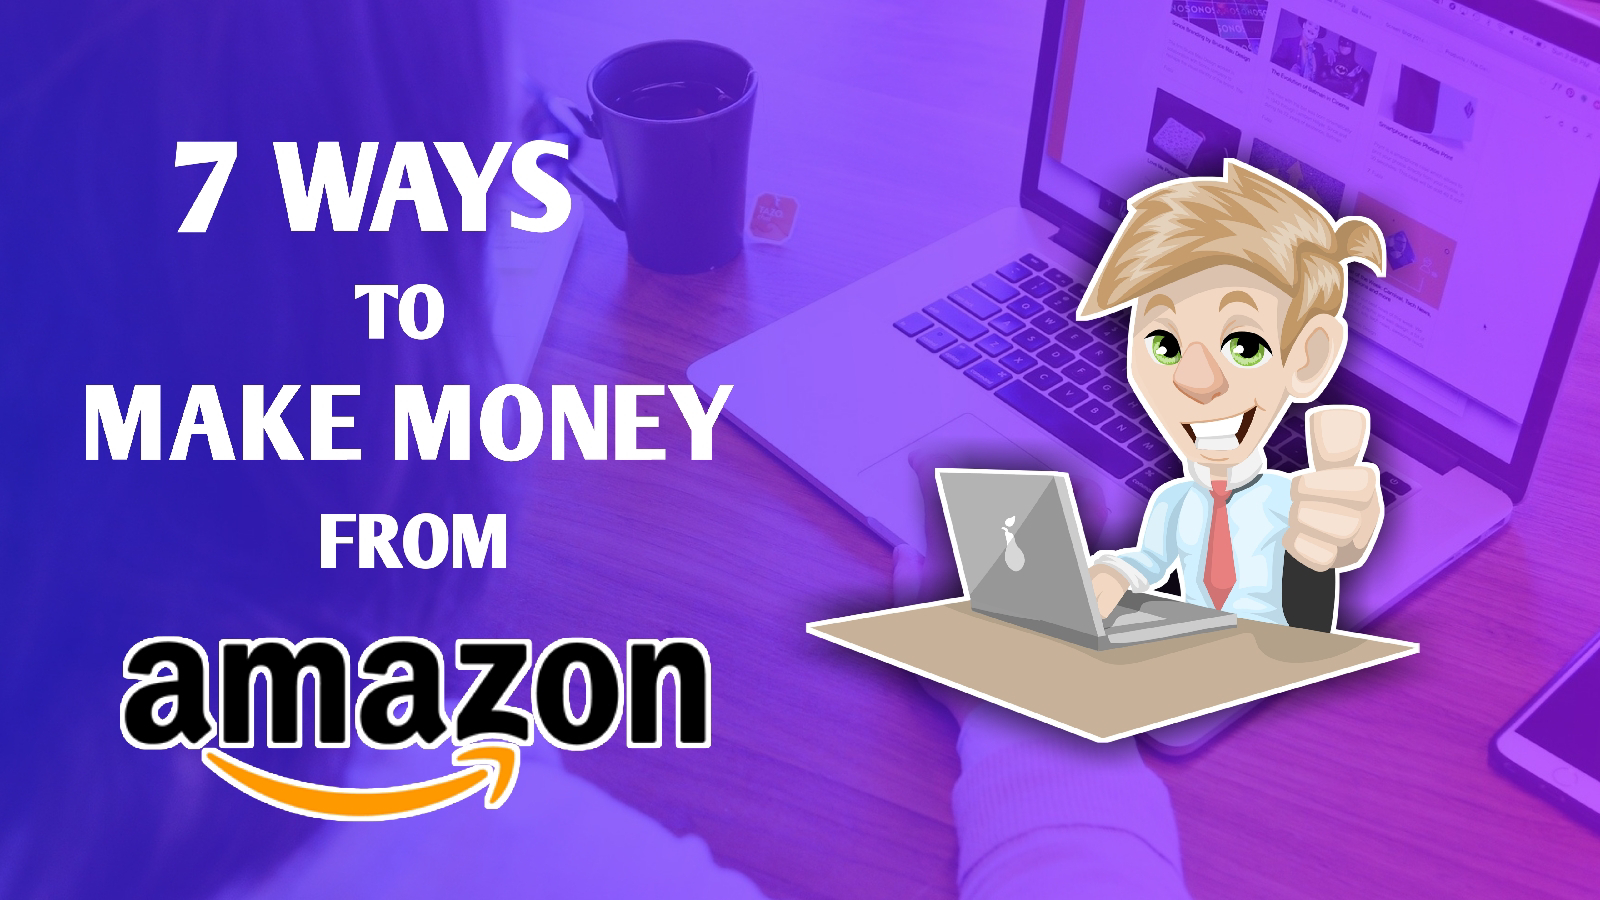 Top ways to make money online and offline, Make Money with Amazon, How To Earn Money From Home In India, Amazon Se Paise Kaise Kamaye? Amazon Affiliate Se Paise Kaise Kamaye – जानिए Amazon Seller Kaise Bane हिंदी में!, अमेज़न से पैसे कैसे कमाए और सेलर कैसे बने, Amazon Affiliate Marketing से पैसे कैसे कमाए, Amazon Se Paise Kaise Kamaye 5 Tips & Tricks, KAMAL HOW, KAMALHOW, Search Results Web results Amazon से घर बैठे पैसे कैसे कमाए, Amazon shoping site से पैसा कैसे कमाए, अमेज़न से पैसे कैसे कमाए टॉप 4 बेस्ट टिप्स,